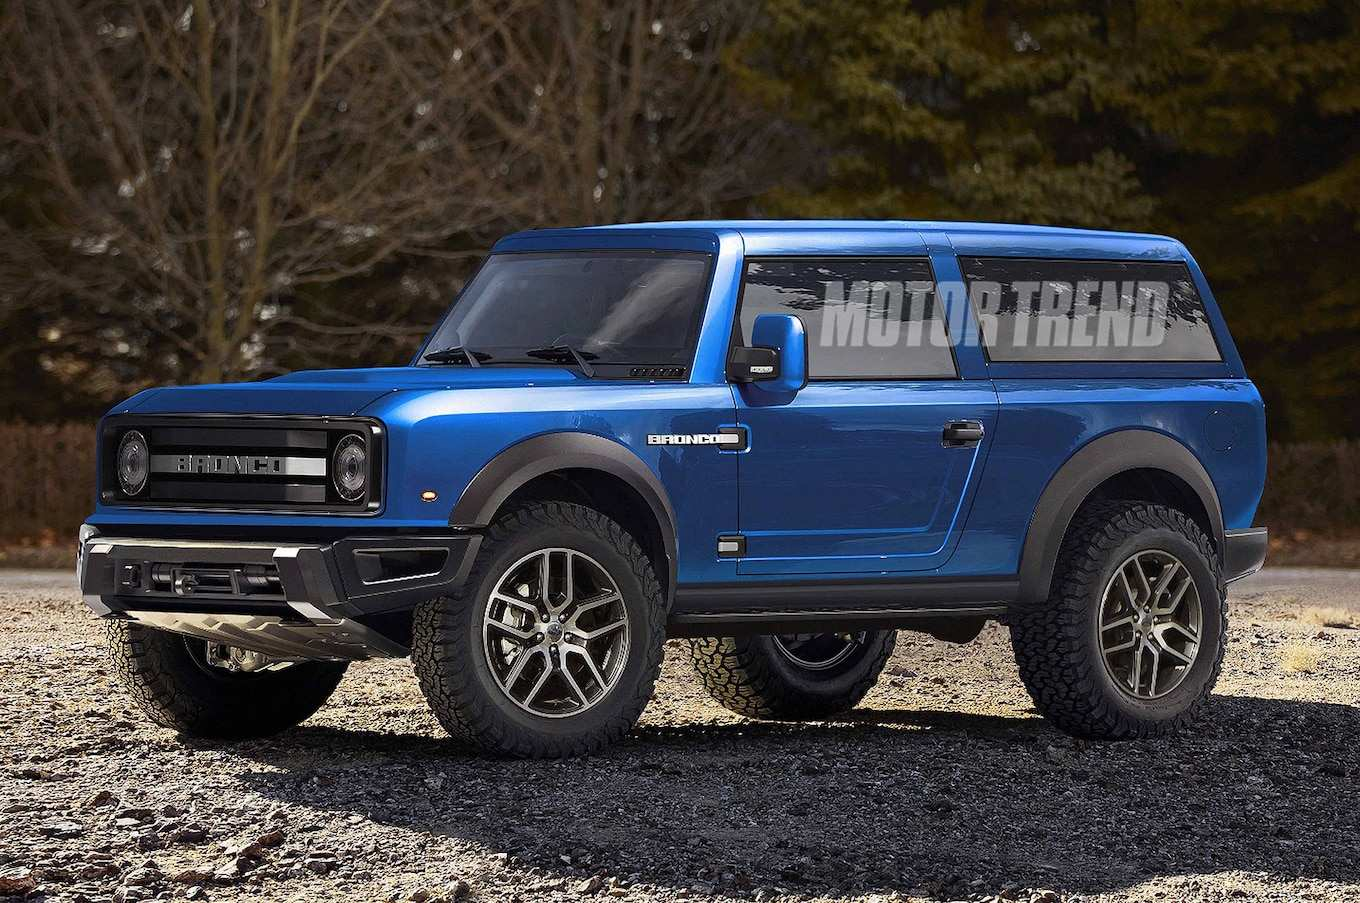 55 All New Ford Bronco 2020 Pictures Release Date And Concept